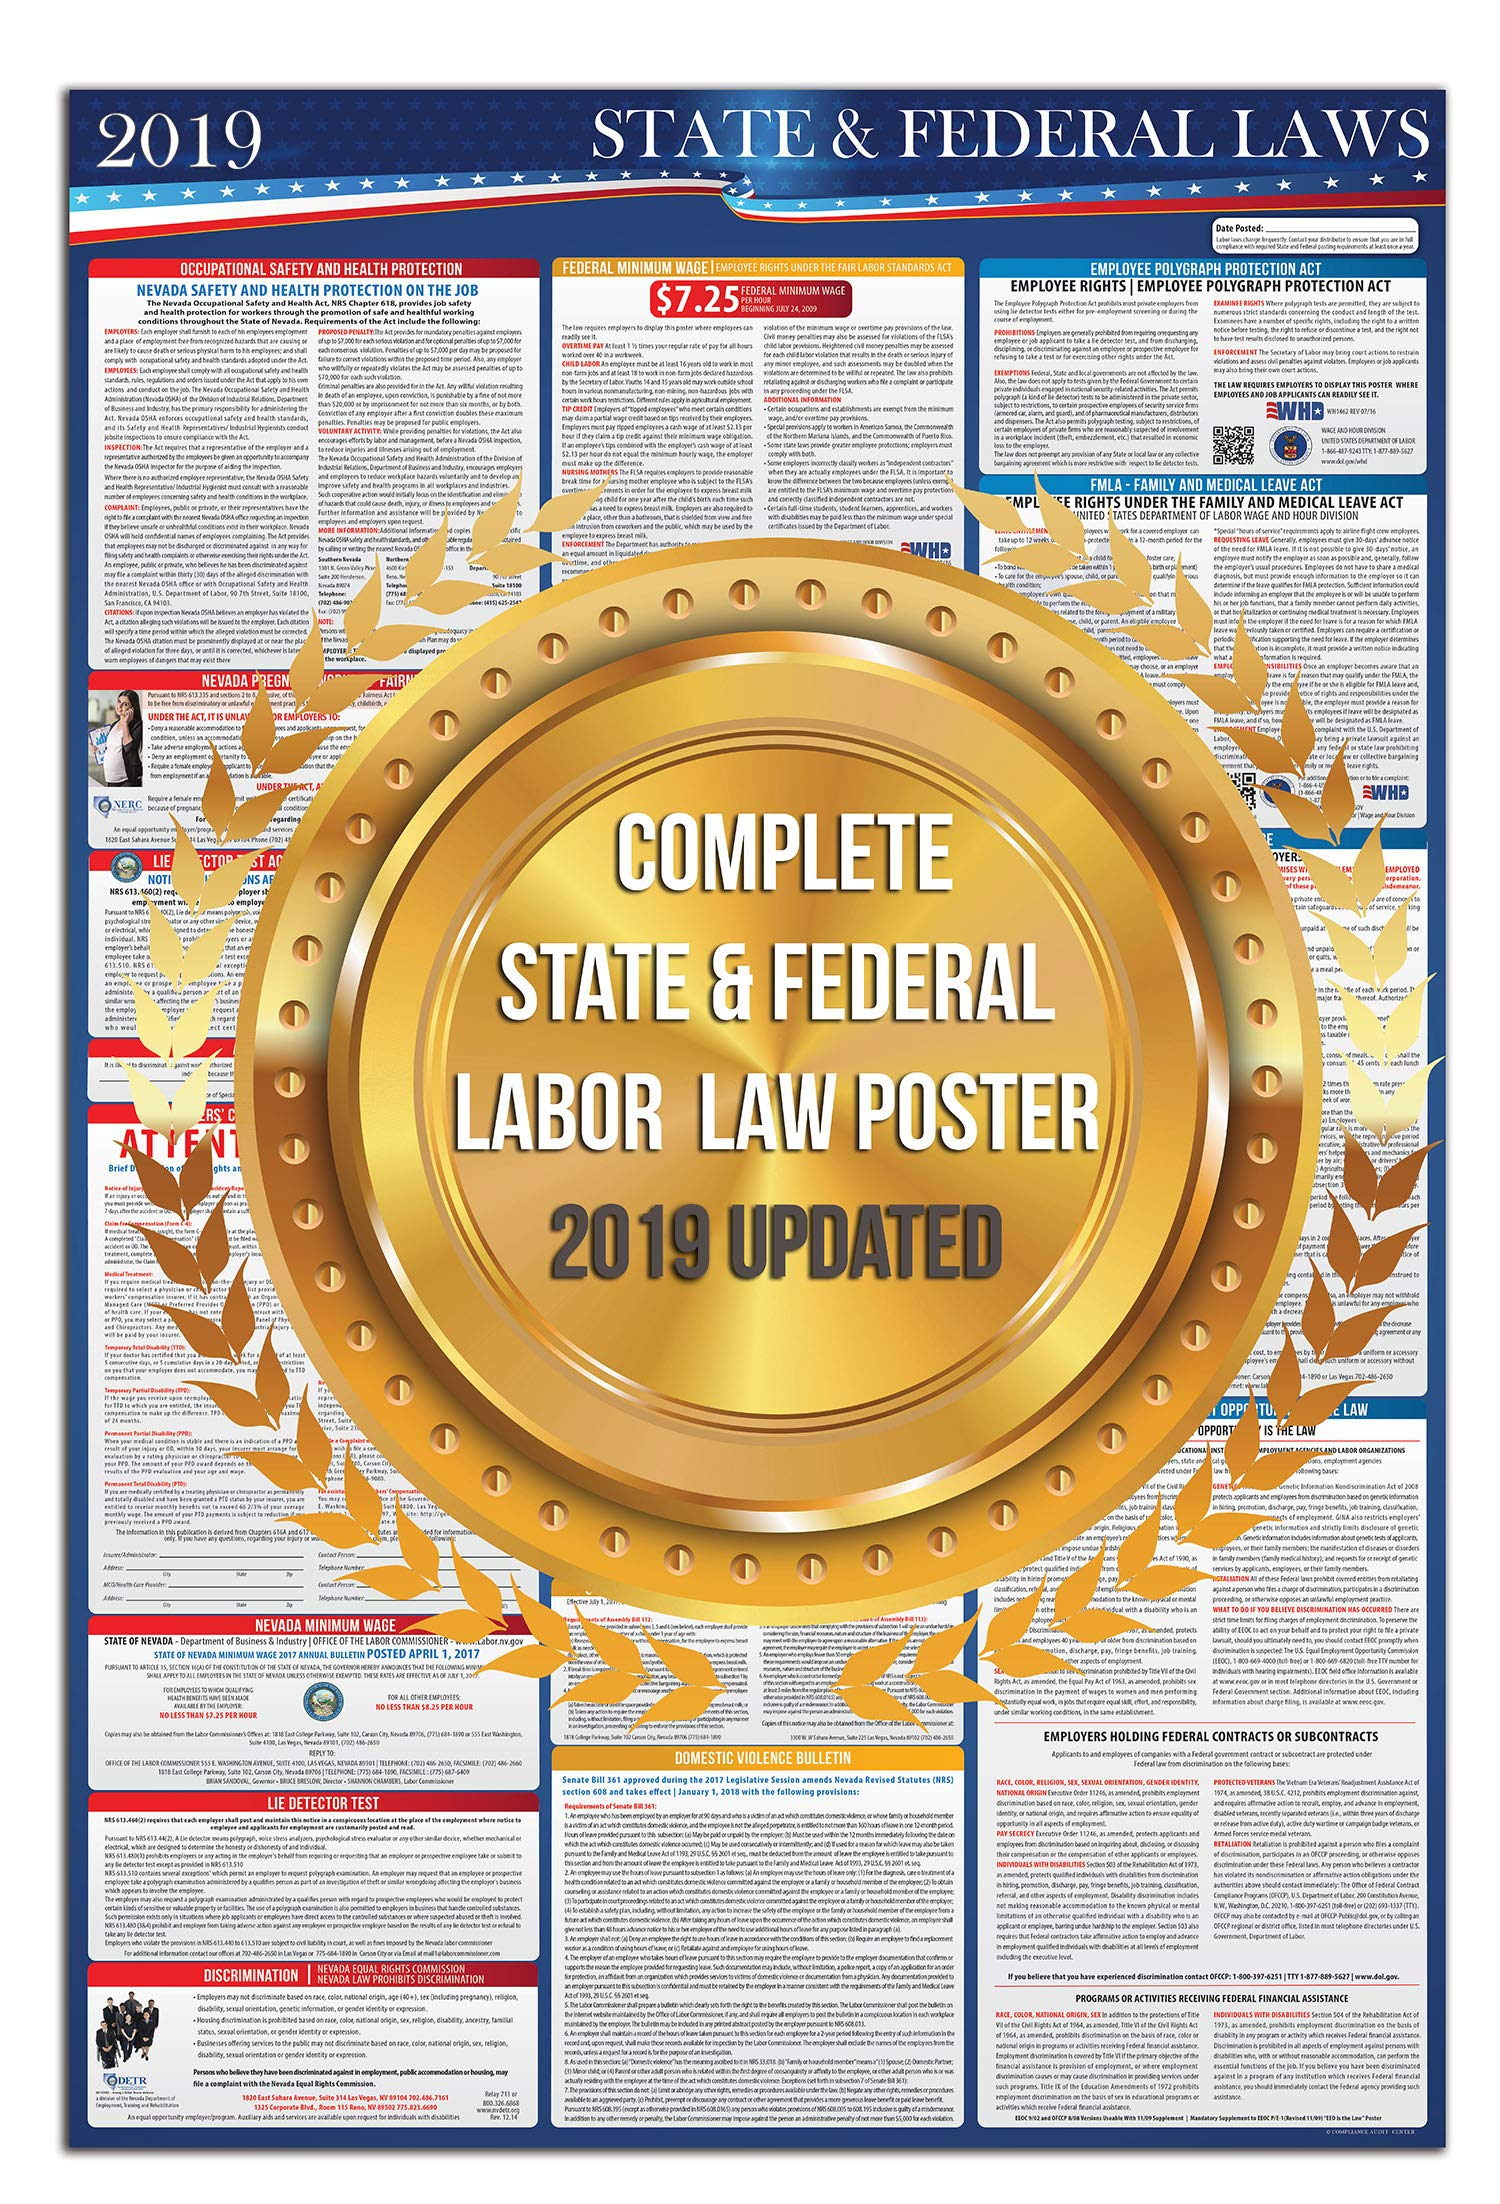 2019 Florida State and Federal Labor Laws Poster - OSHA Workplace Compliant 24'' x 36'' - All in One Required Posting - UV Coated by COMPLIANCE AUDIT CENTER (Image #2)